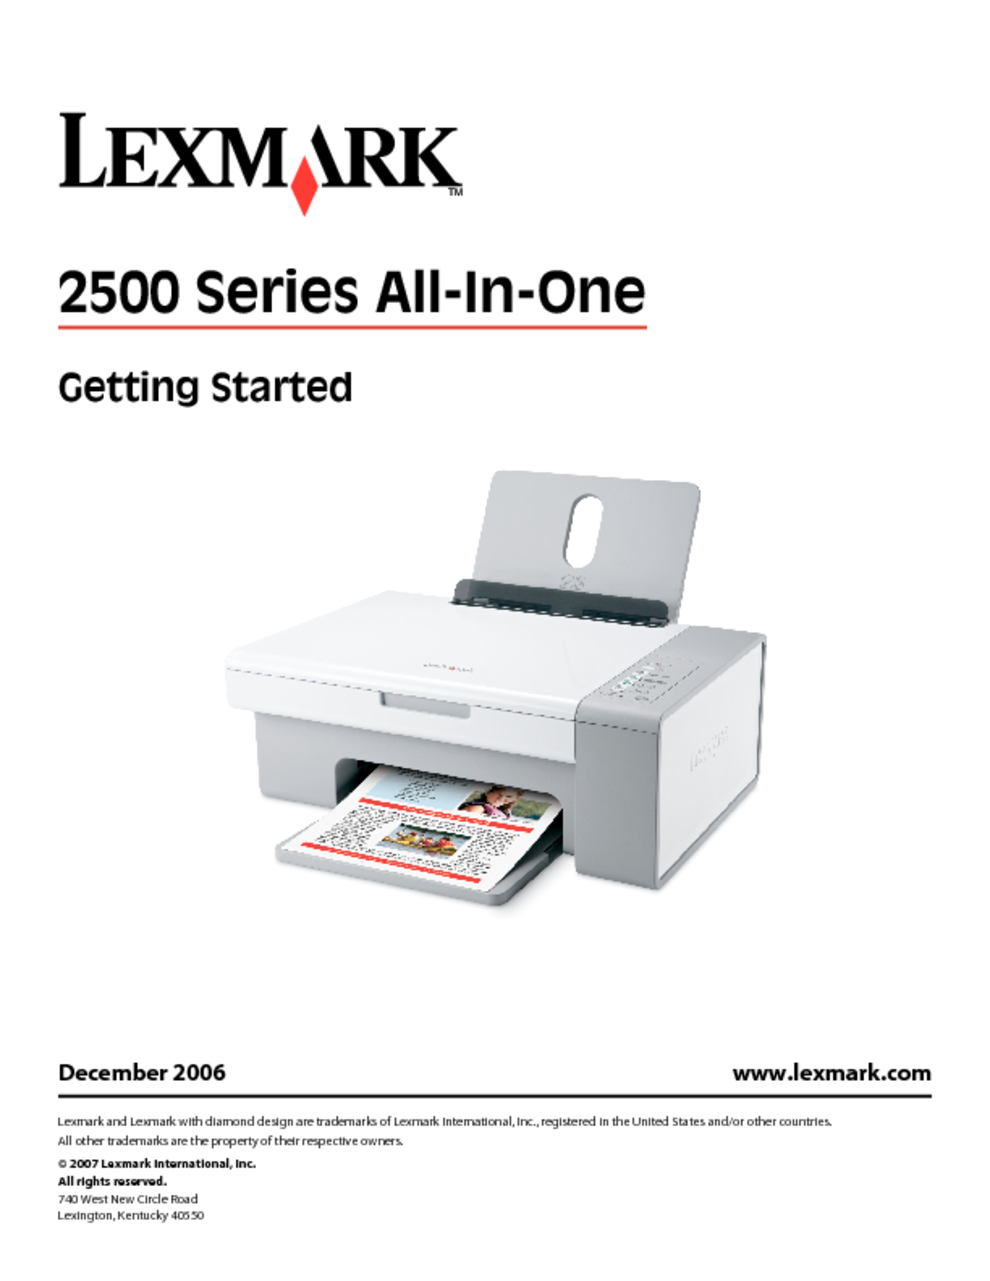 printer users guides printer page 154 rh usersmanuals1 com BrainPOP Register User Register Your Product